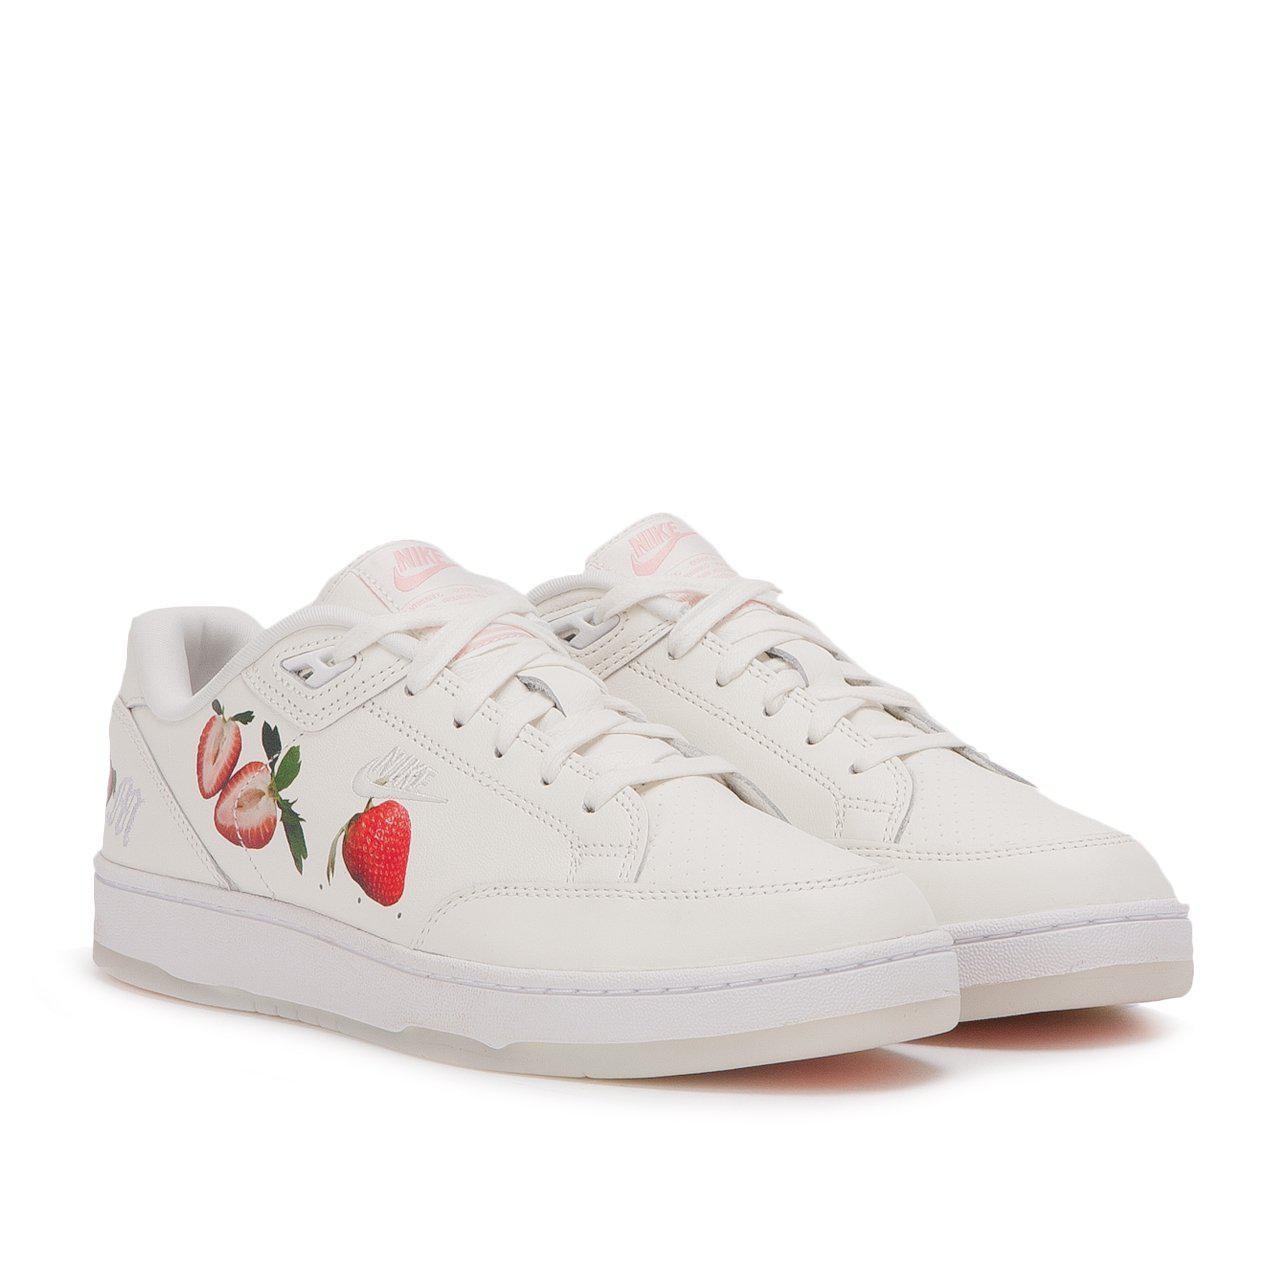 Nike Rubber Grandstand Ii Pinnacle in White for Men